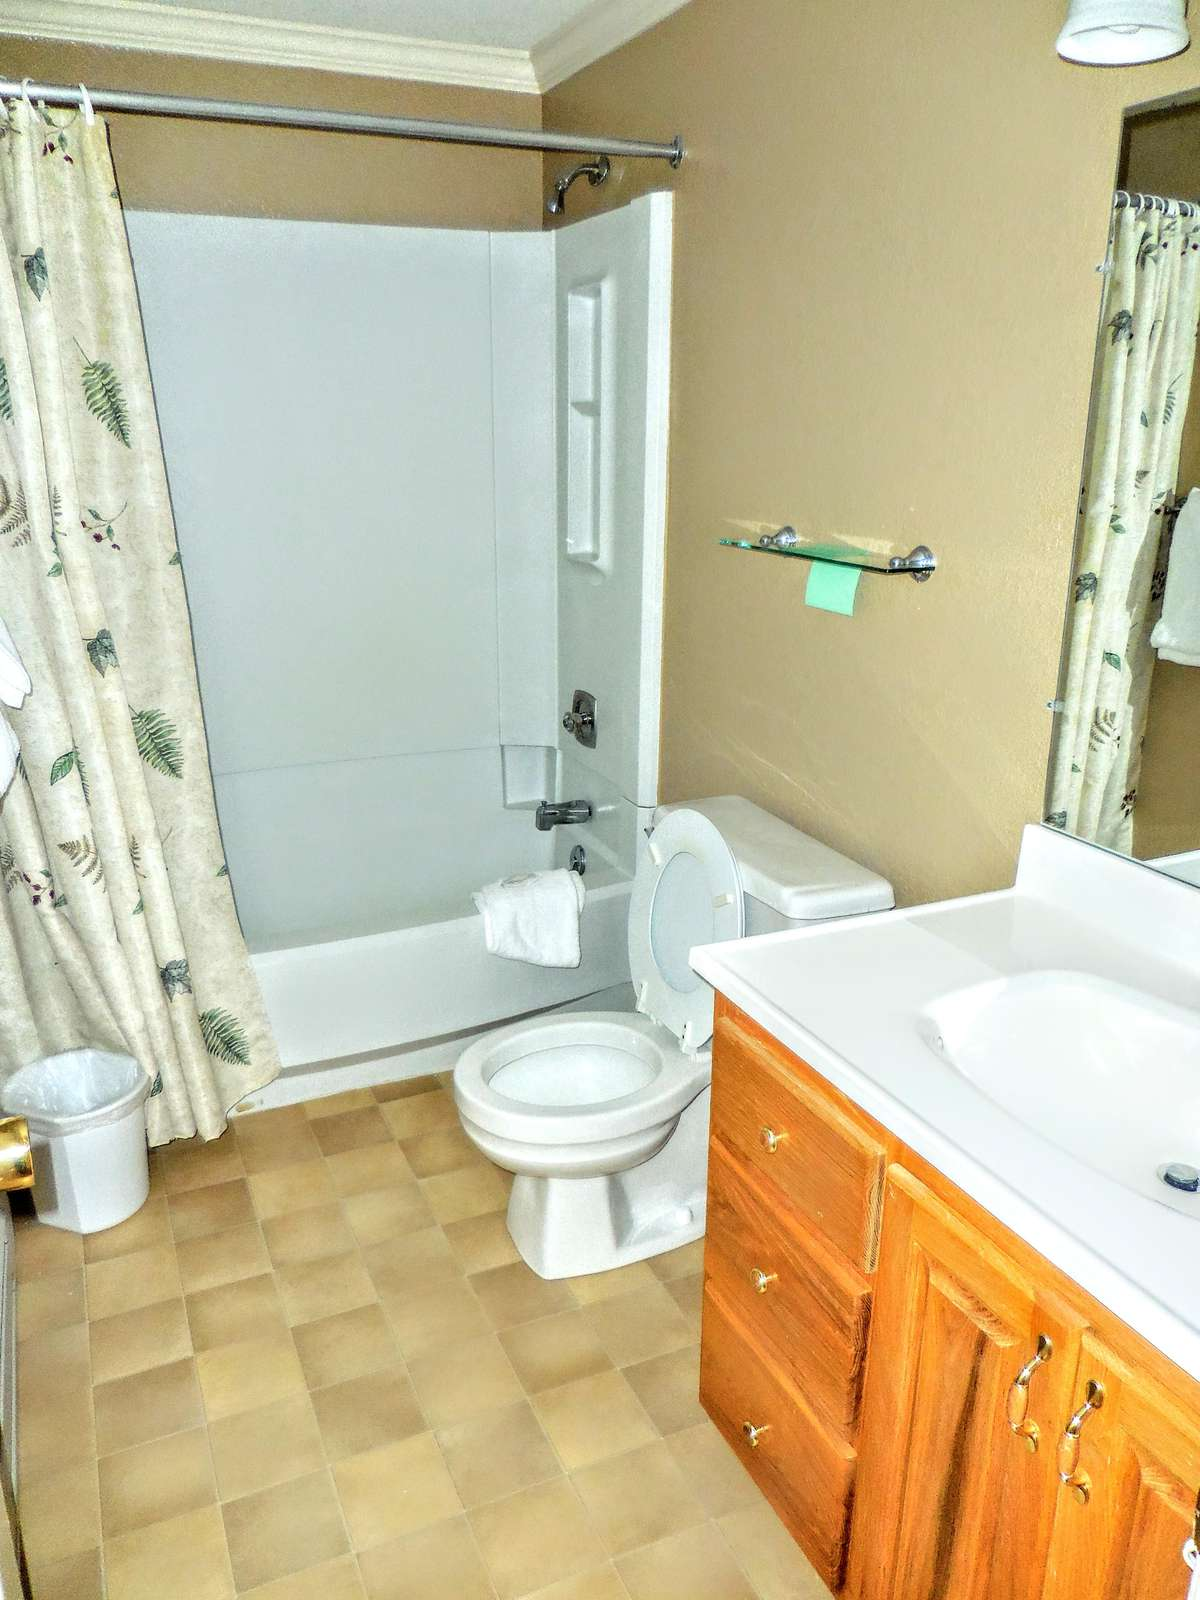 Full-sized second bathroom in hallway includes tub and shower.